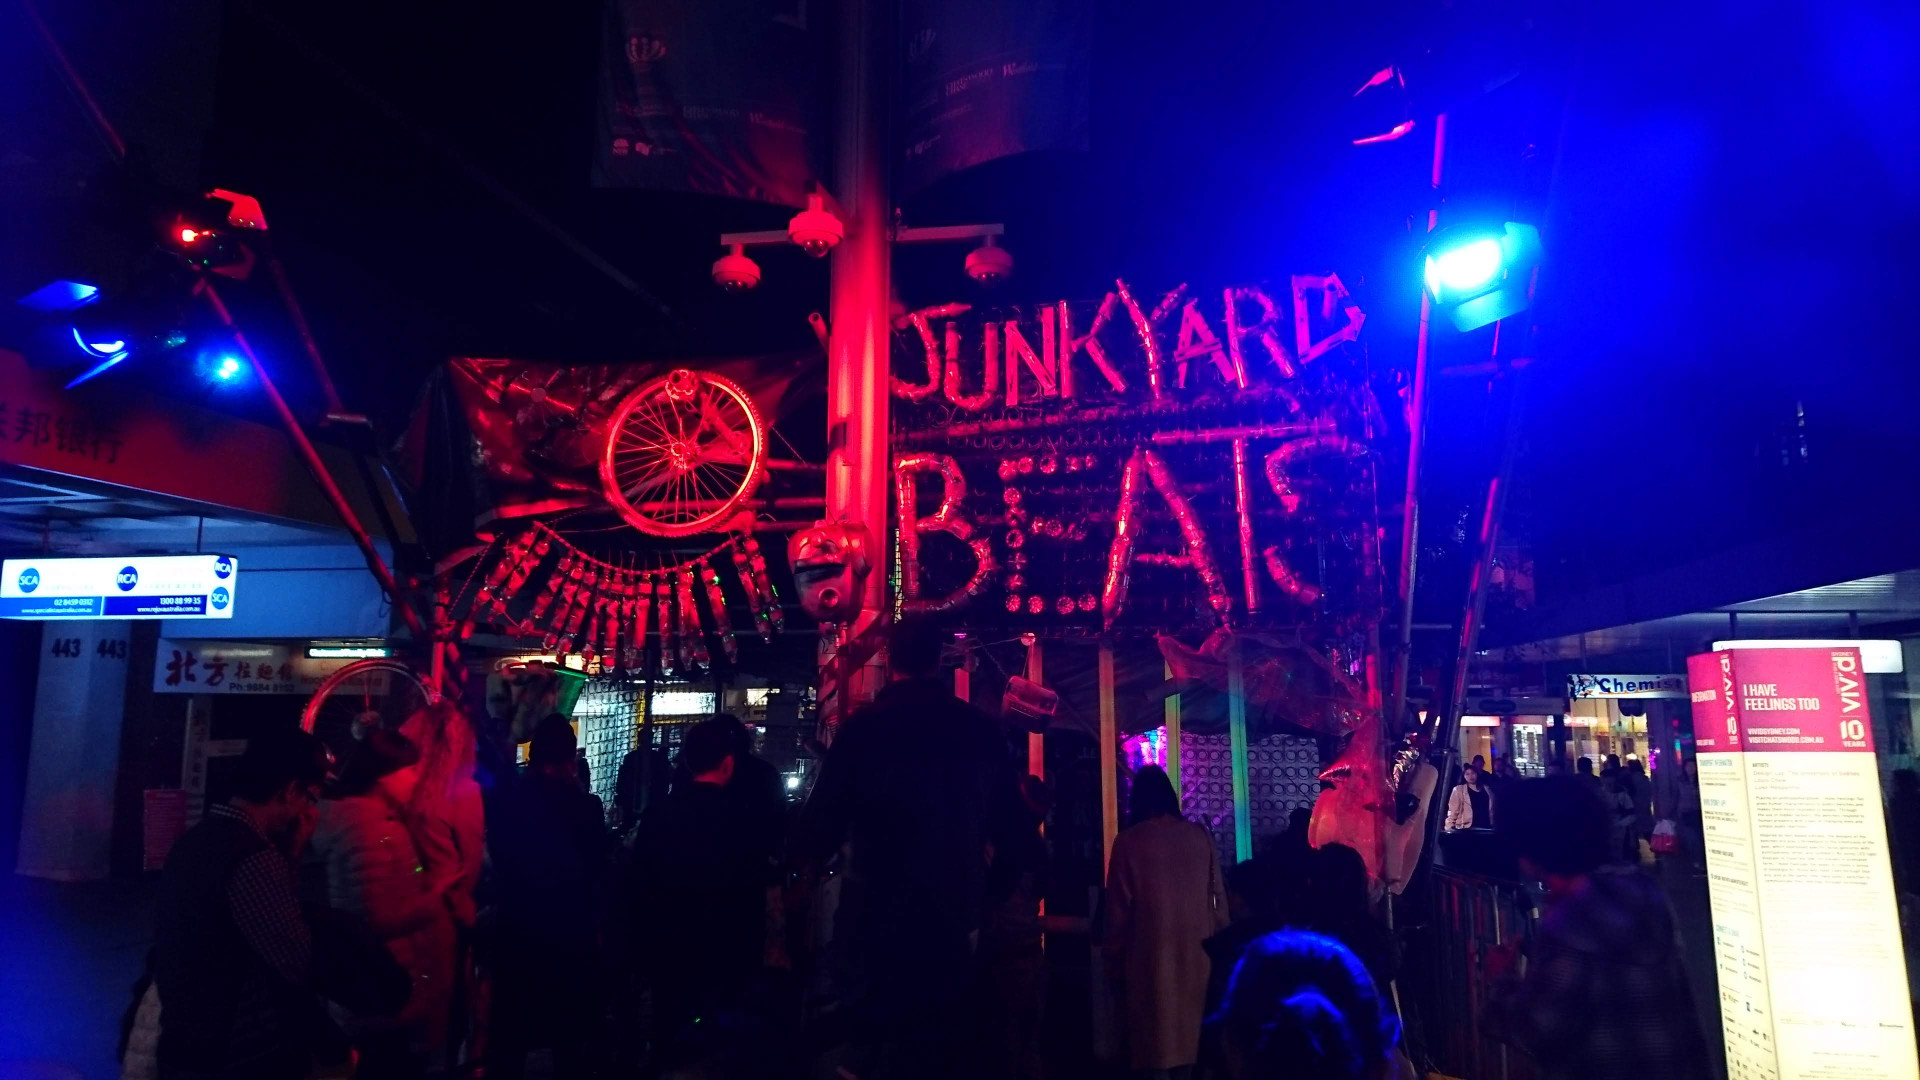 Junkyard Beats made from recycled materials